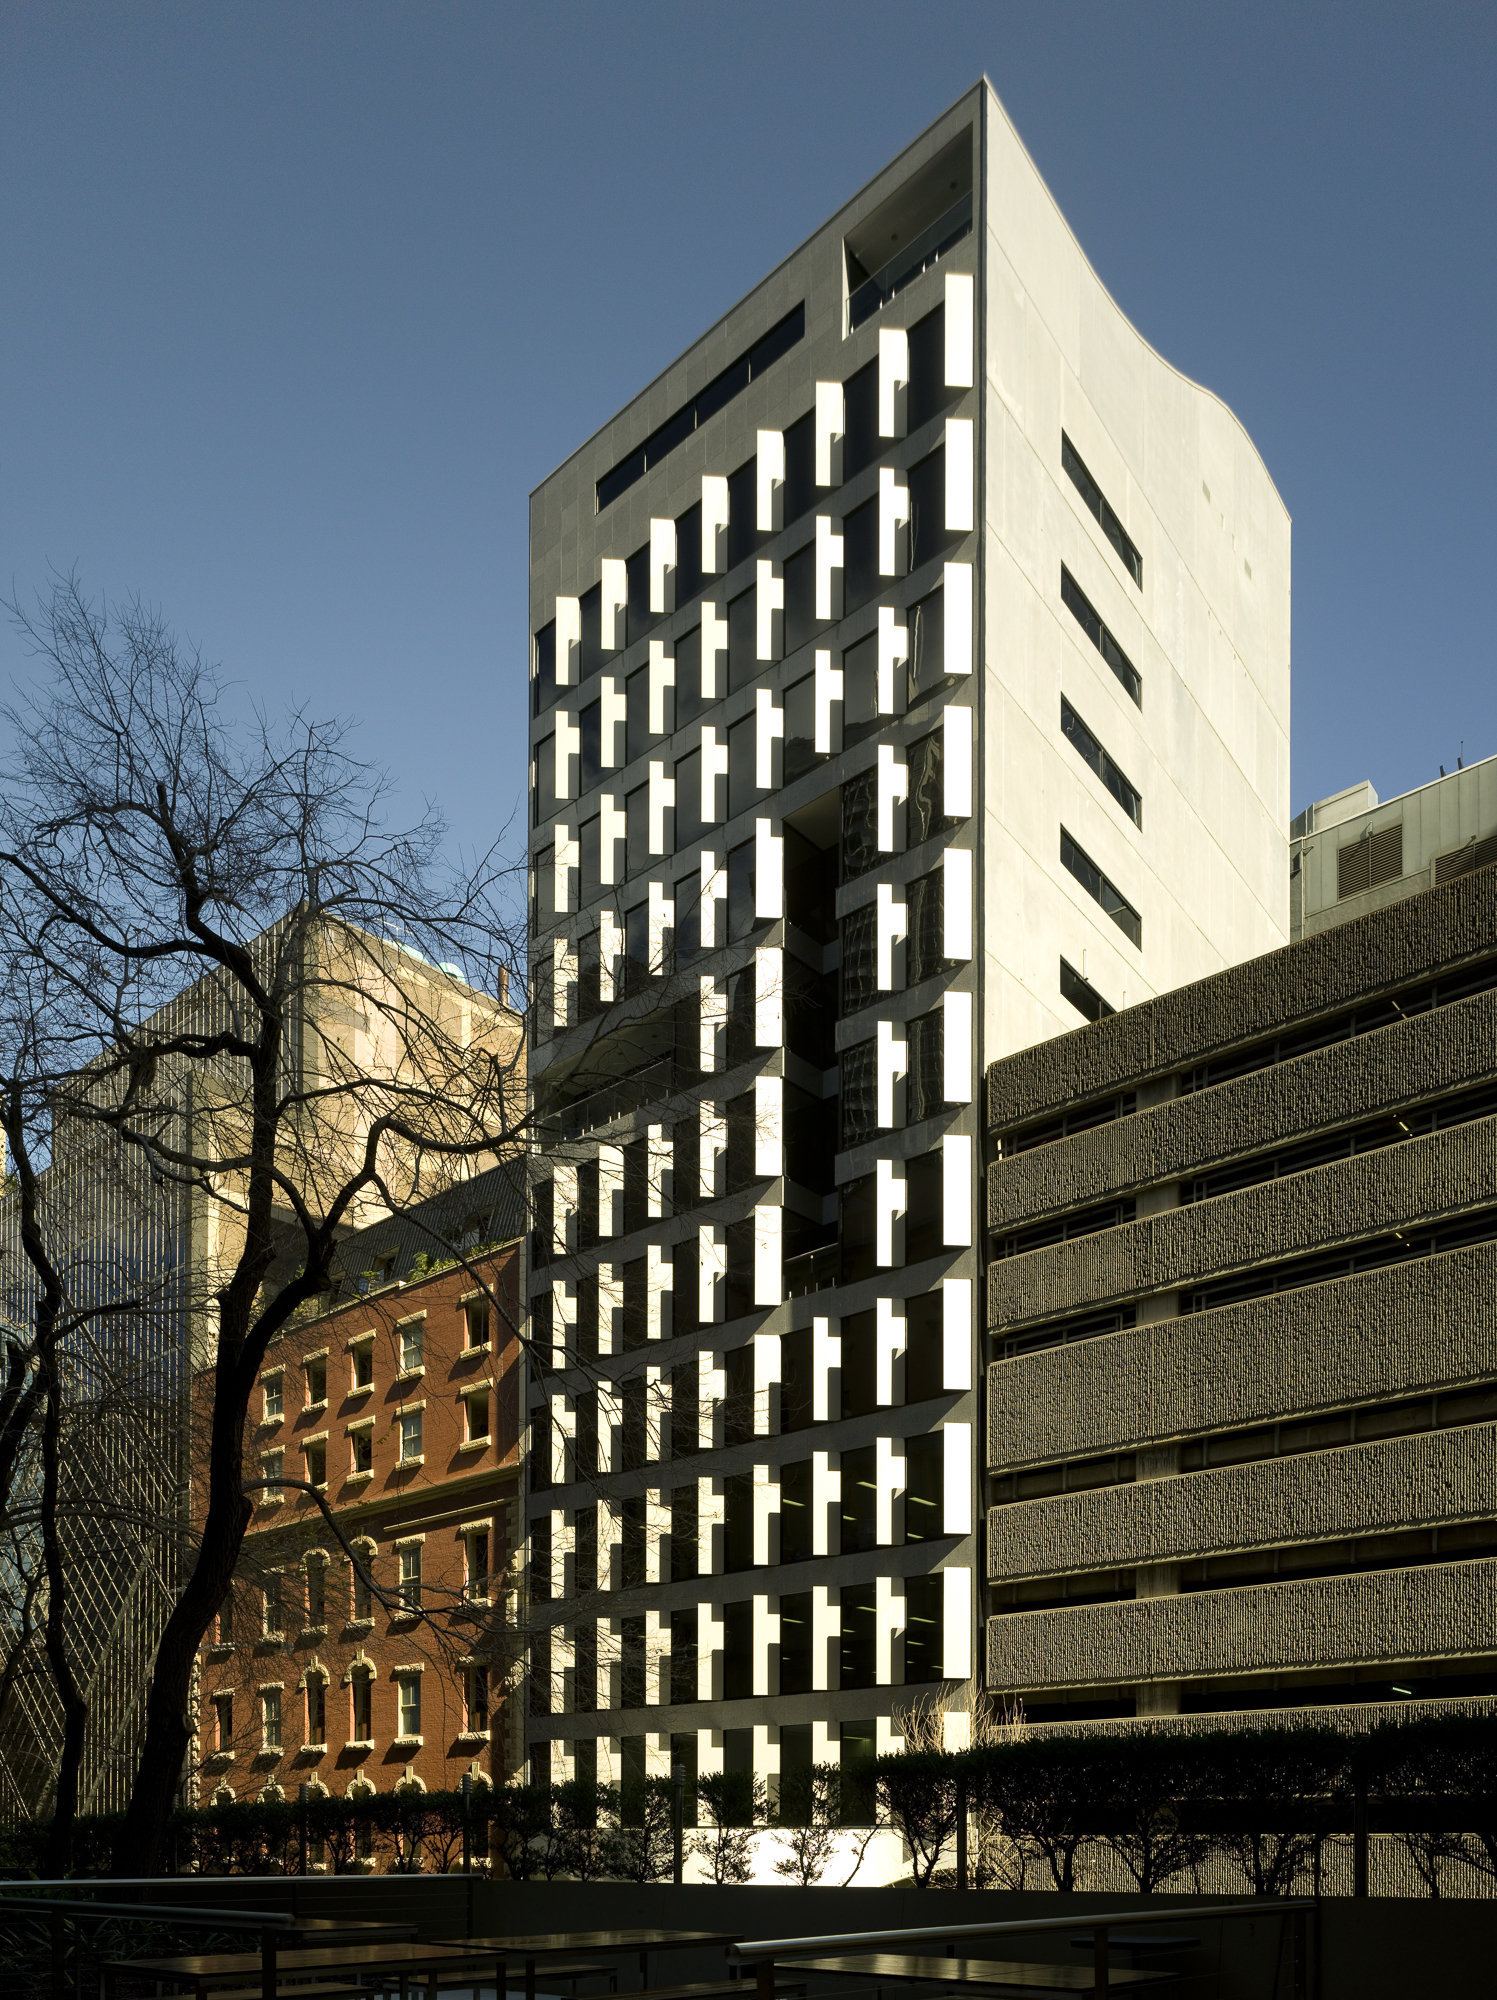 Alliance Français Building, Sydney